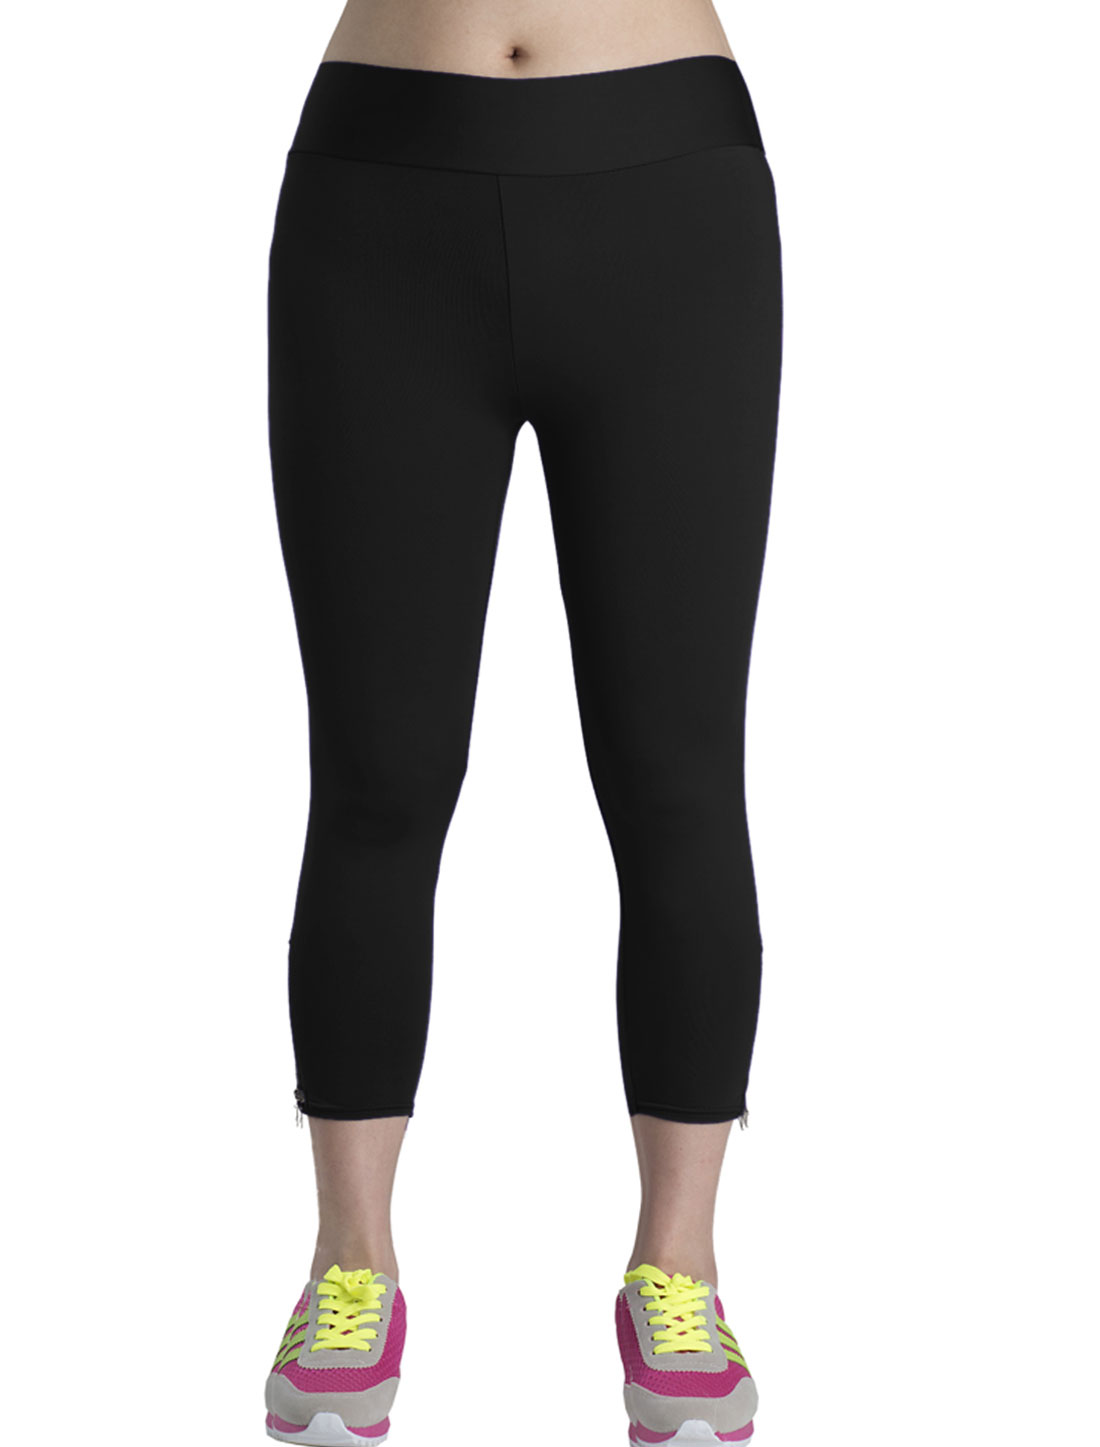 Lady Zipper Side Stretchy Casual Skinny Capri Pants Black M